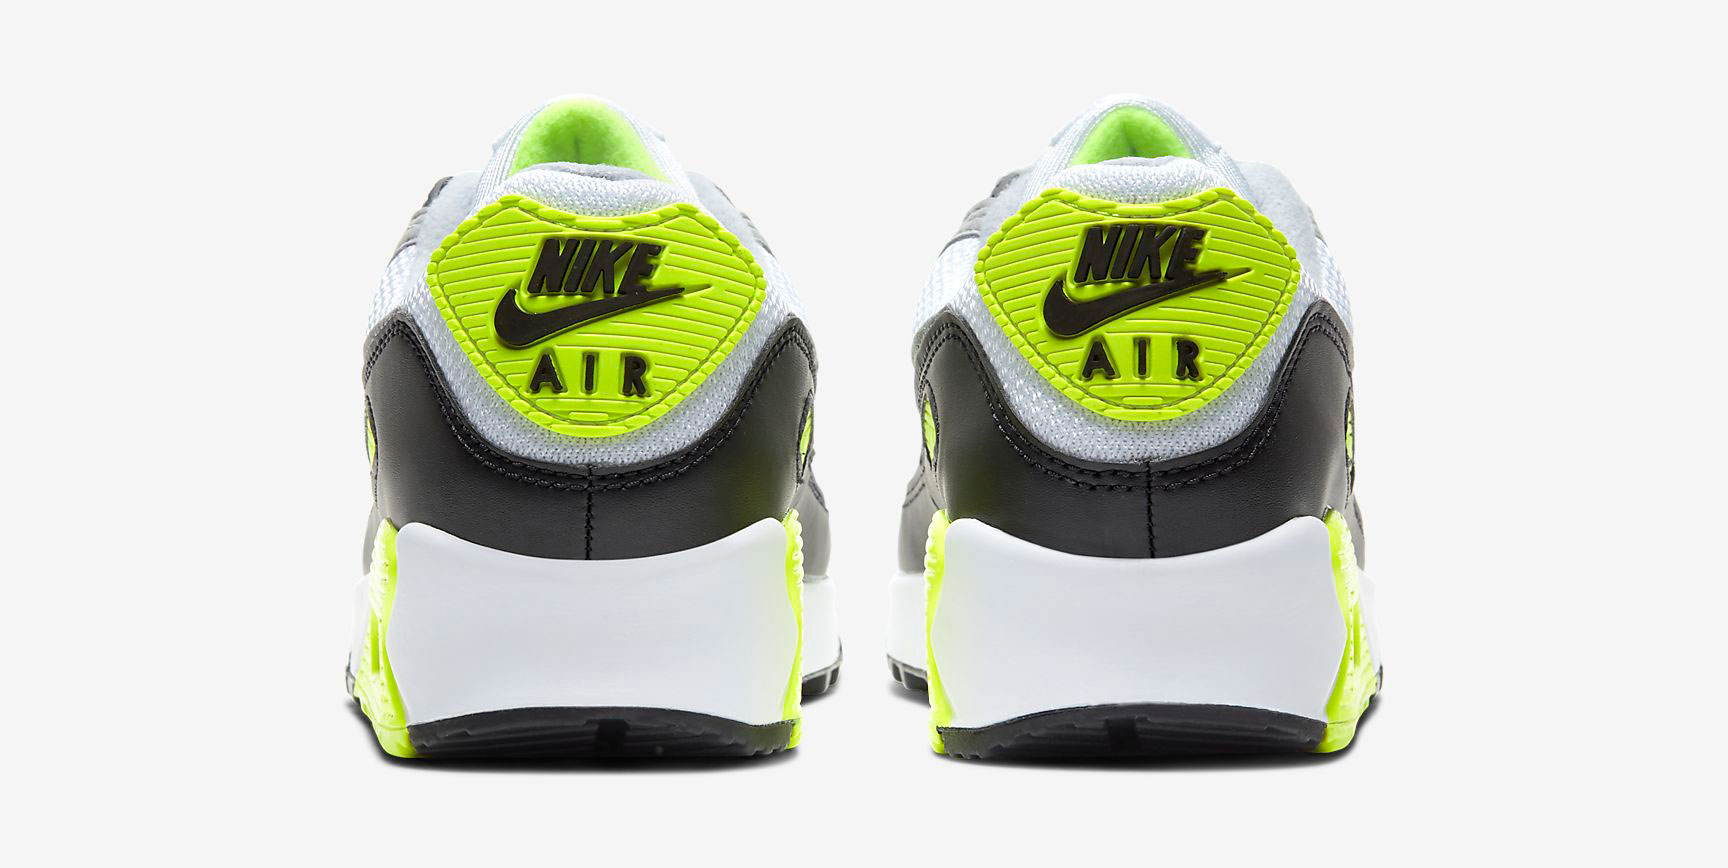 nike-air-max-90-og-volt-grey-5